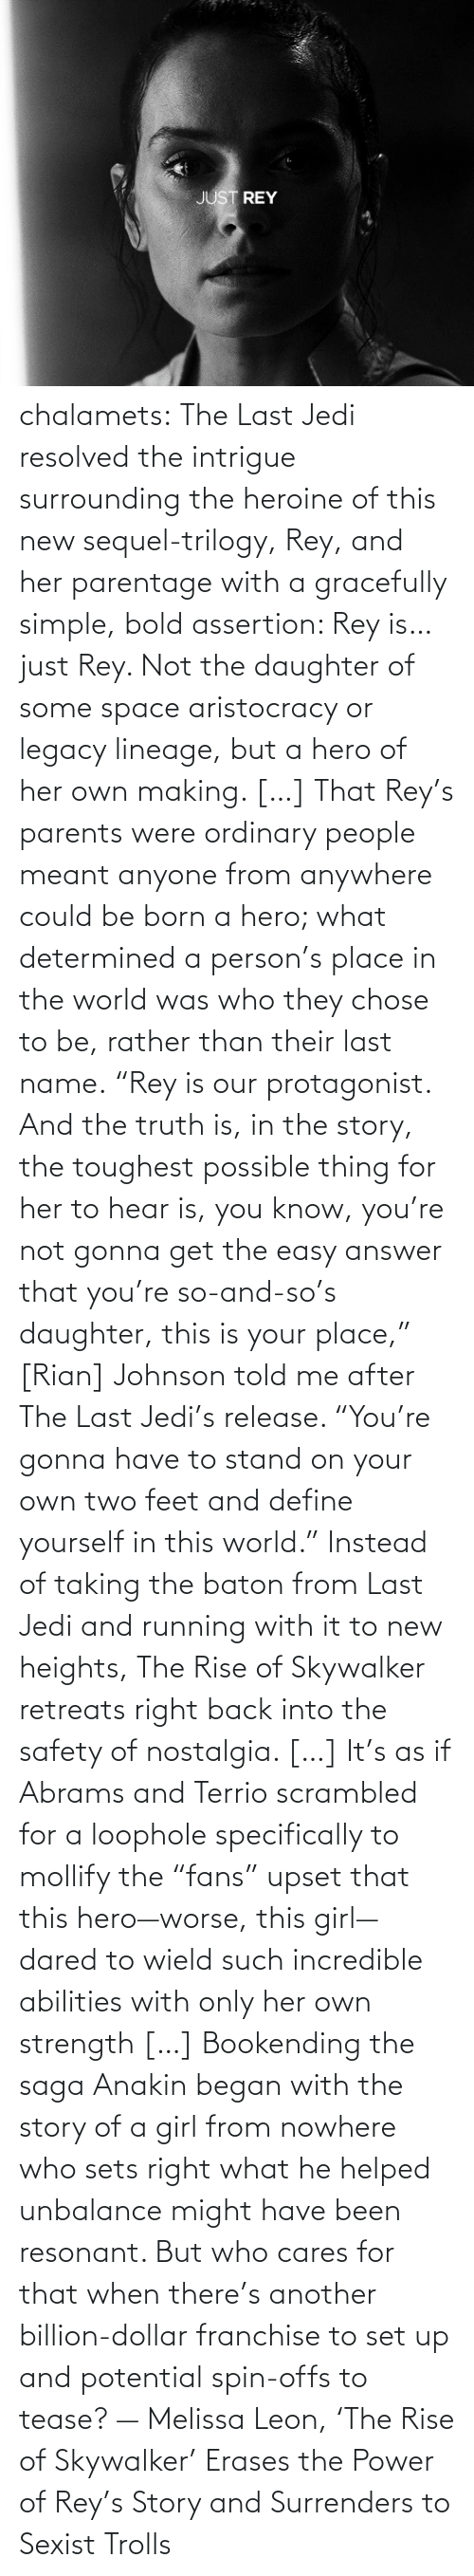 "This Girl: chalamets:  The Last Jedi resolved the intrigue surrounding the heroine of this new sequel-trilogy, Rey, and her parentage with a gracefully simple, bold assertion: Rey is… just Rey. Not the daughter of some space aristocracy or legacy lineage, but a hero of her own making. […] That Rey's parents were ordinary people meant anyone from anywhere could be born a hero; what determined a person's place in the world was who they chose to be, rather than their last name. ""Rey is our protagonist. And the truth is, in the story, the toughest possible thing for her to hear is, you know, you're not gonna get the easy answer that you're so-and-so's daughter, this is your place,"" [Rian] Johnson told me after The Last Jedi's release. ""You're gonna have to stand on your own two feet and define yourself in this world."" Instead of taking the baton from Last Jedi and running with it to new heights, The Rise of Skywalker retreats right back into the safety of nostalgia. […] It's as if Abrams and Terrio scrambled for a loophole specifically to mollify the ""fans"" upset that this hero—worse, this girl—dared to wield such incredible abilities with only her own strength […] Bookending the saga Anakin began with the story of a girl from nowhere who sets right what he helped unbalance might have been resonant. But who cares for that when there's another billion-dollar franchise to set up and potential spin-offs to tease? — Melissa Leon, 'The Rise of Skywalker' Erases the Power of Rey's Story and Surrenders to Sexist Trolls"